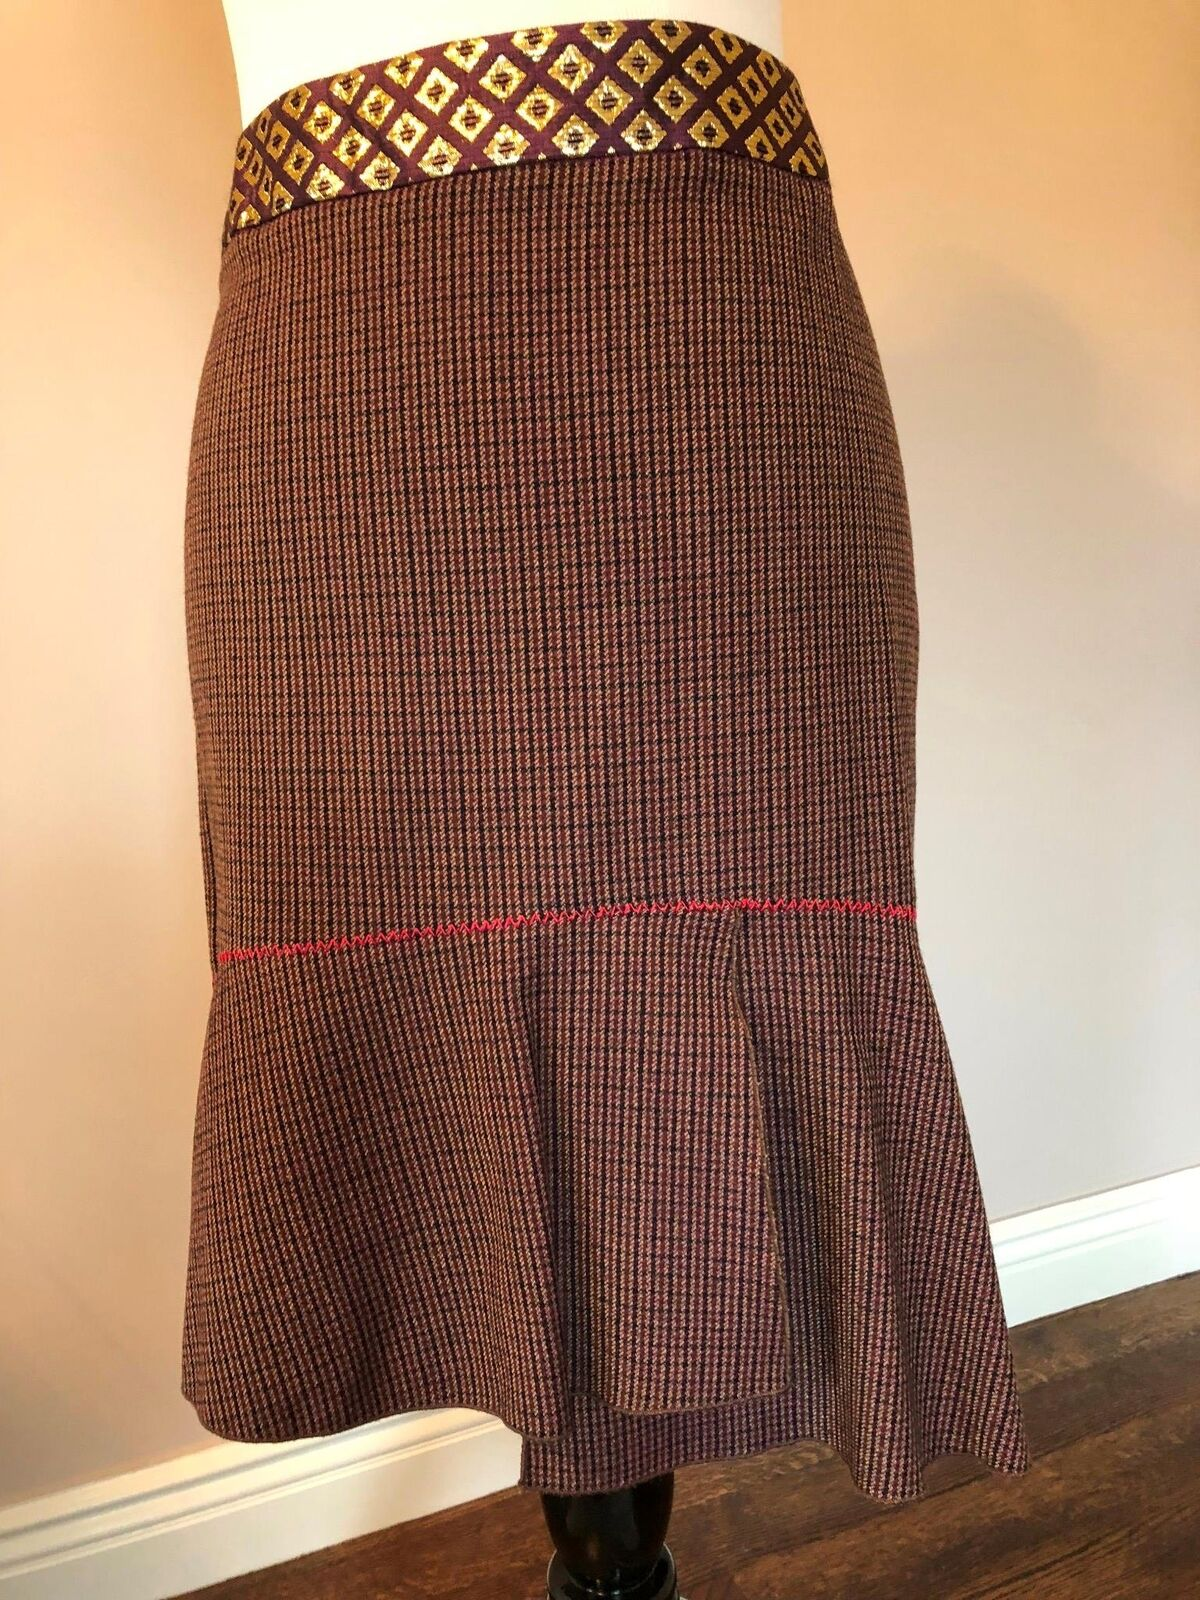 NWOT blueMARINE gold Trimmed Wool Tramped Skirt SZ IT 46 US 12 Made in